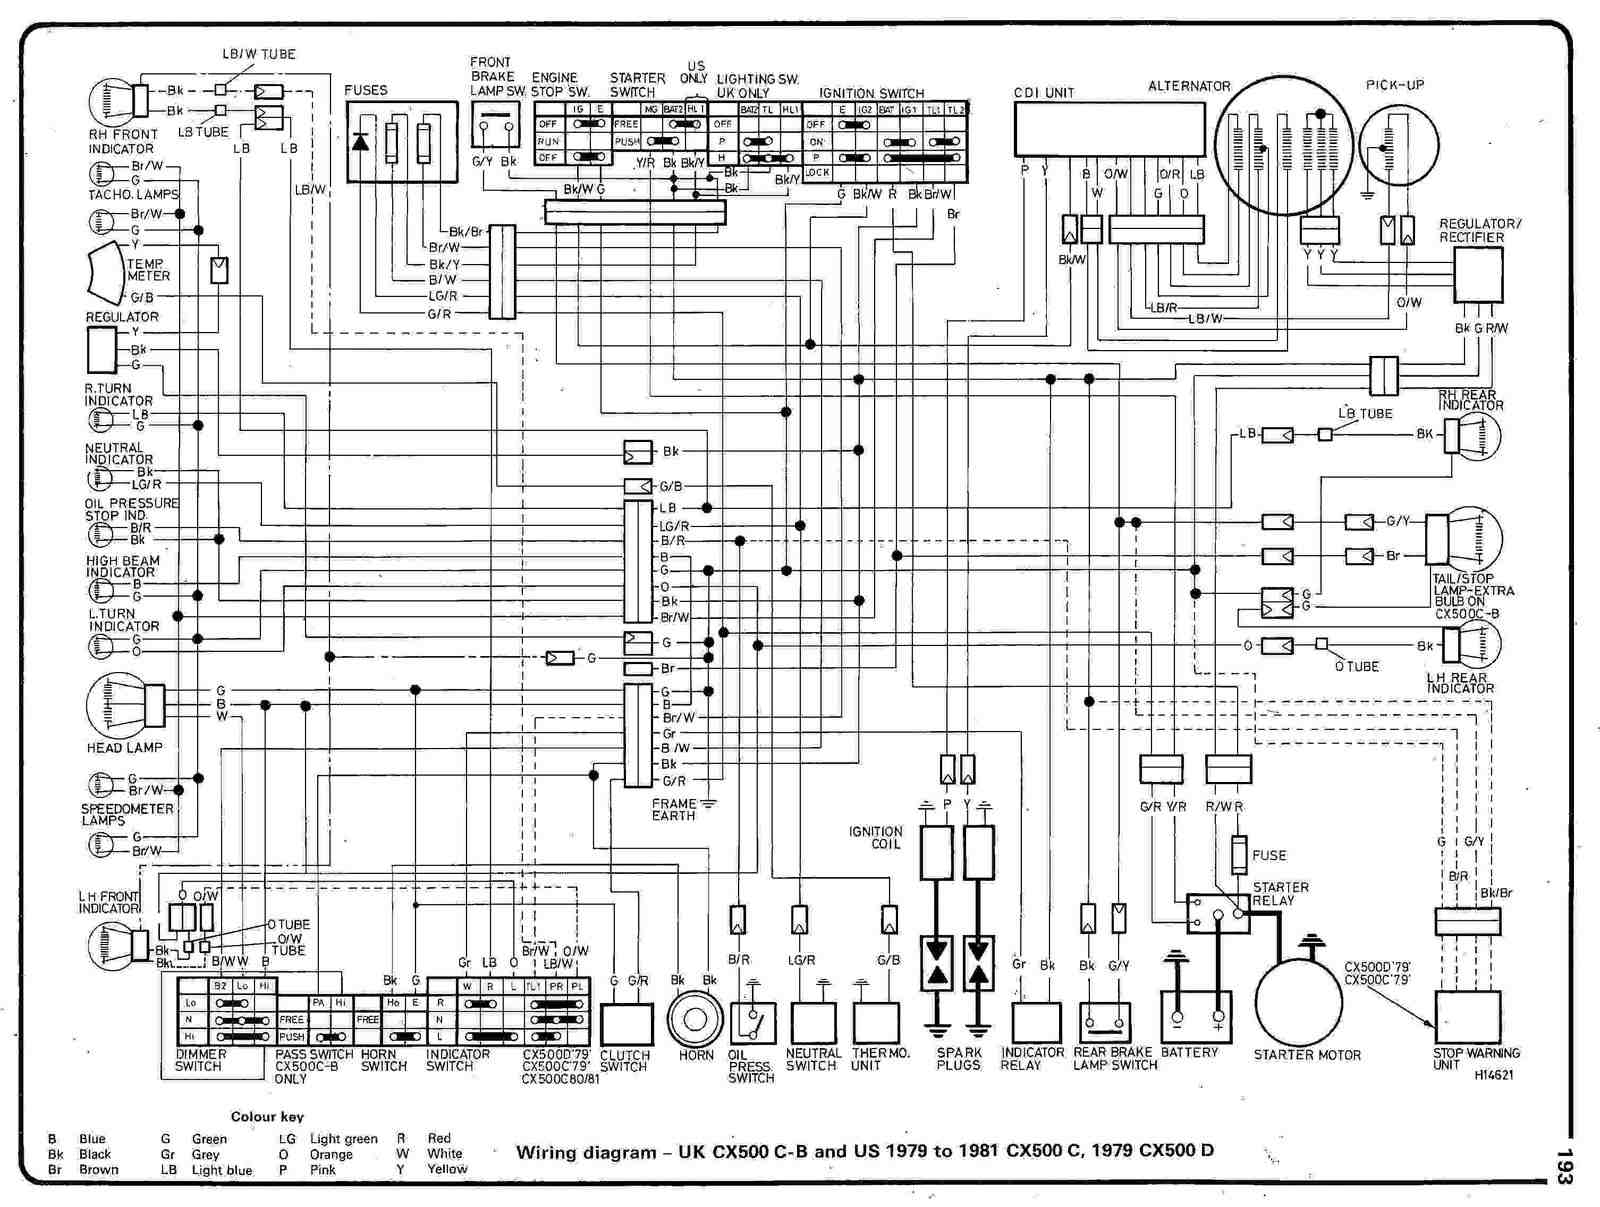 Honda+CX500+C B+(UK)+and+(US)+CX500+C+1979 81+and+1979+CX500+D+Electrical+Wiring+Diagram wiring woes gl1200 aspencade wiring diagram at gsmx.co